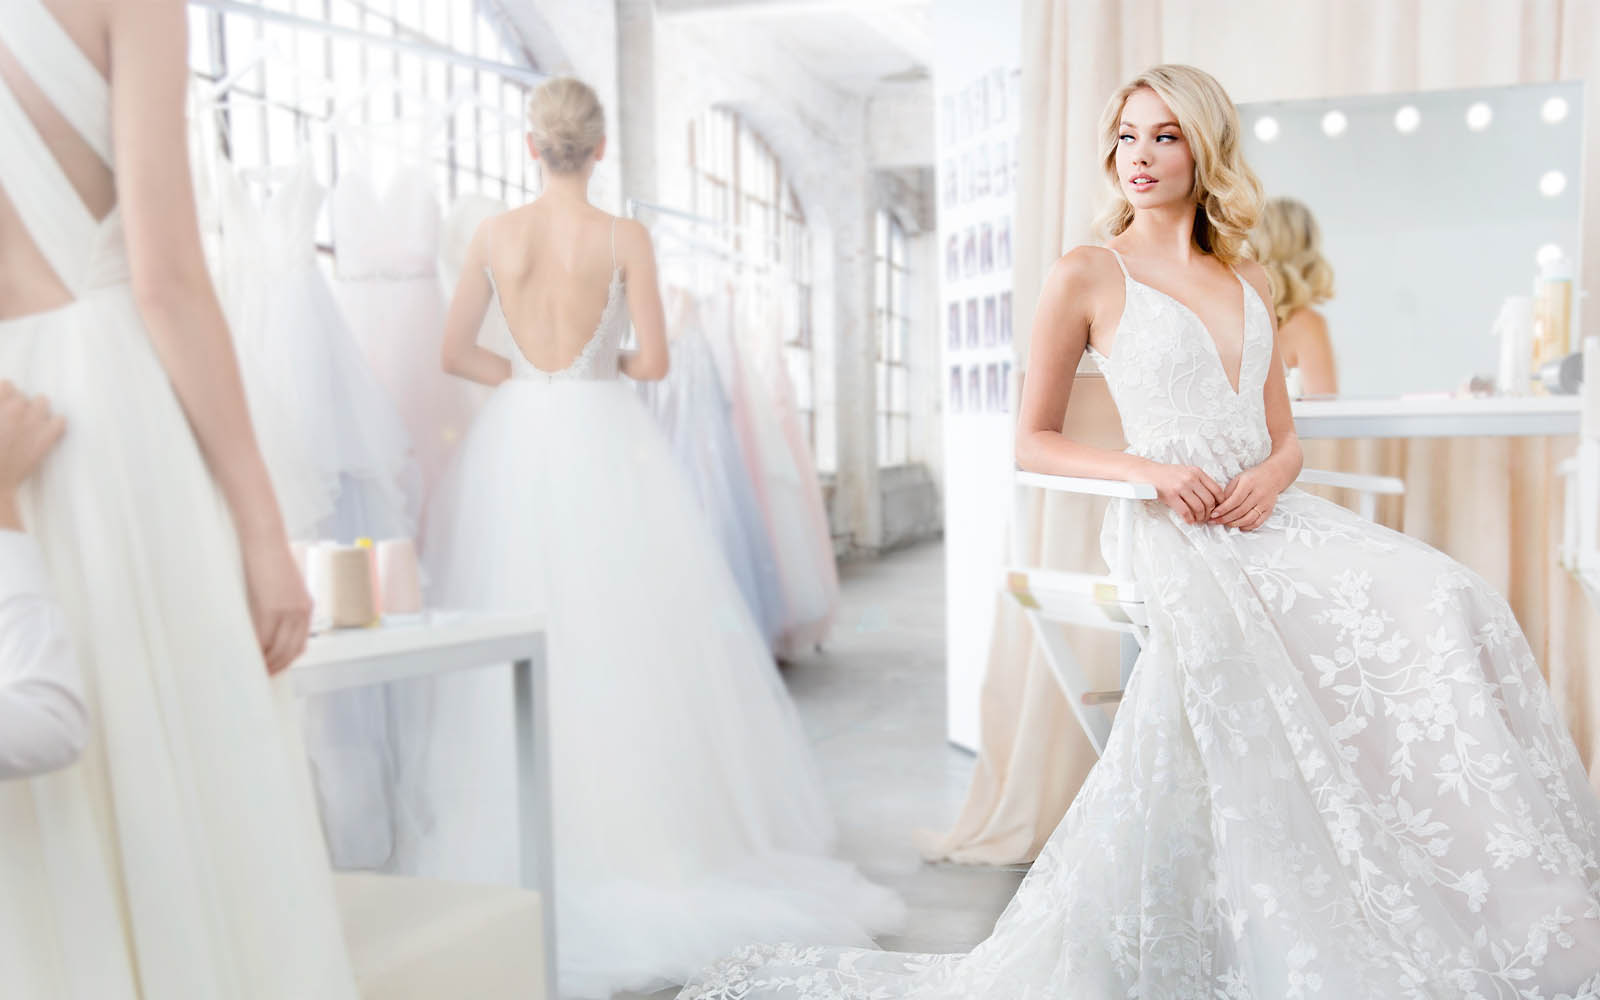 Hayley Paige Dresses - White Satin Bridal Boutique Ottawa - Designer & Luxury Wedding Gown - Off the rack & custom order - Bridal Seamstress